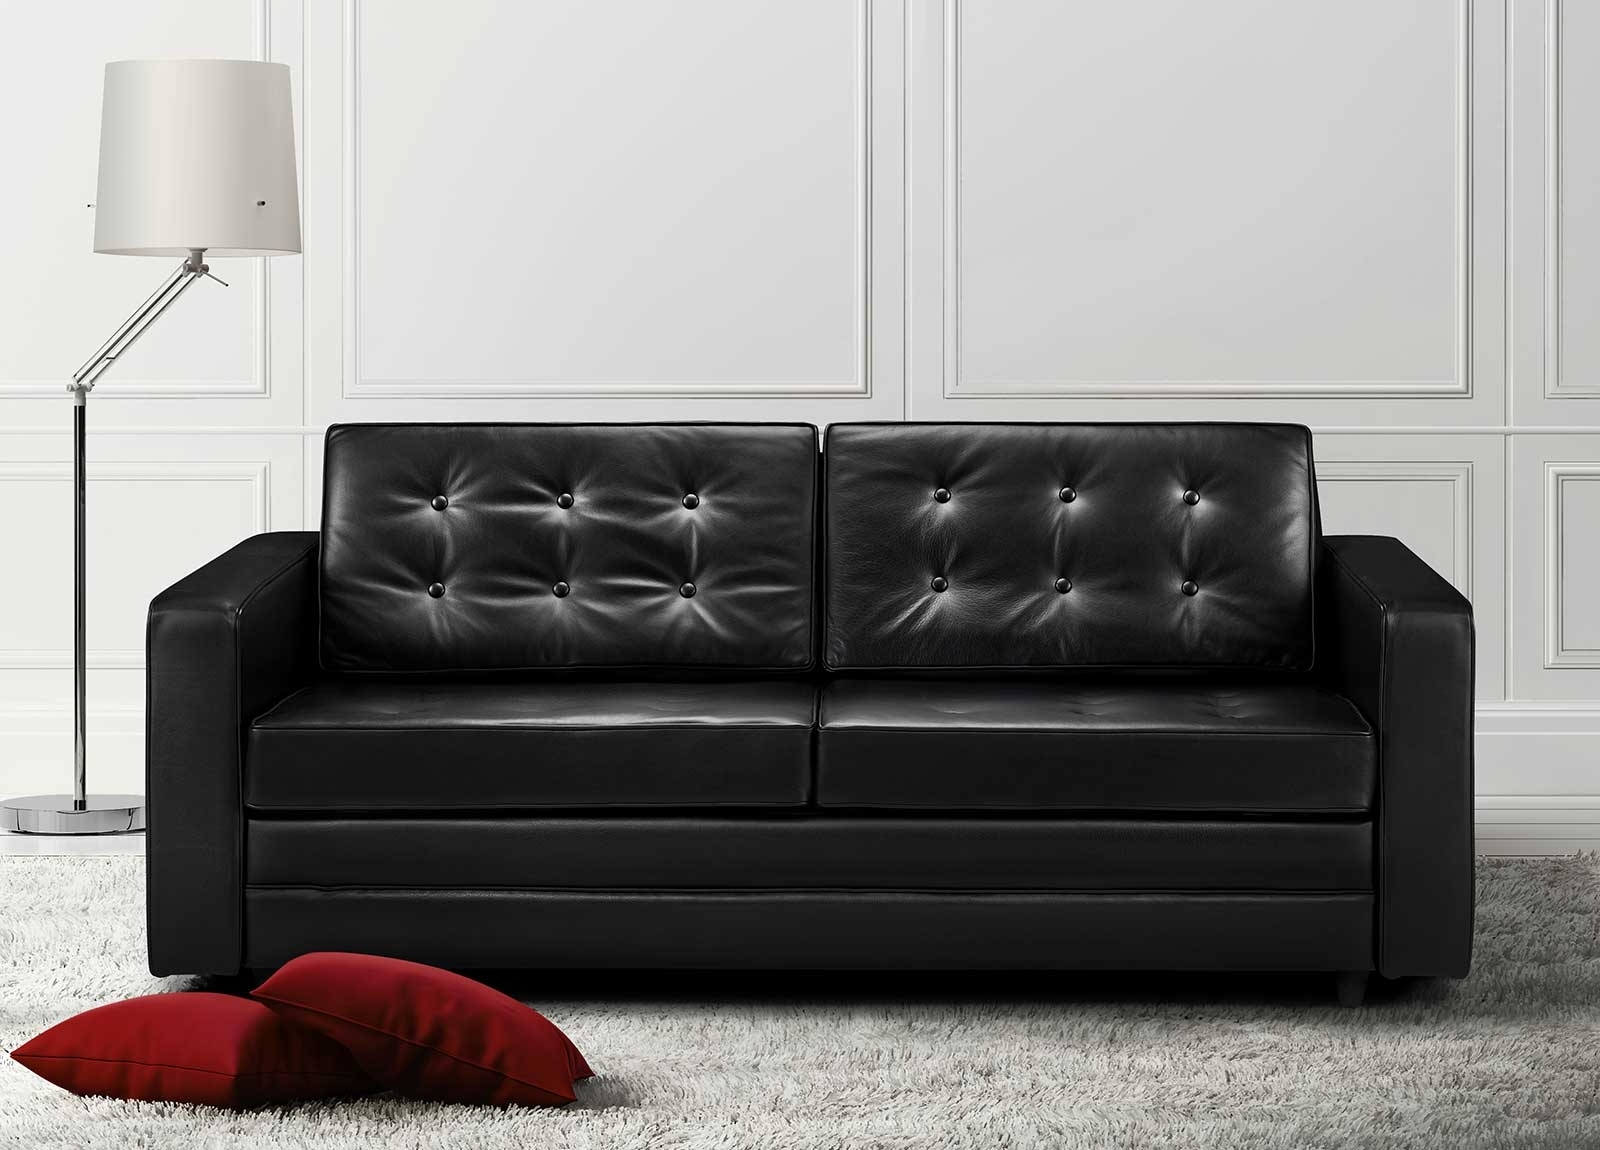 Retro Sofas With Most Current Retro Sofa Beds, 50S Style With A Quality Bed (View 16 of 20)